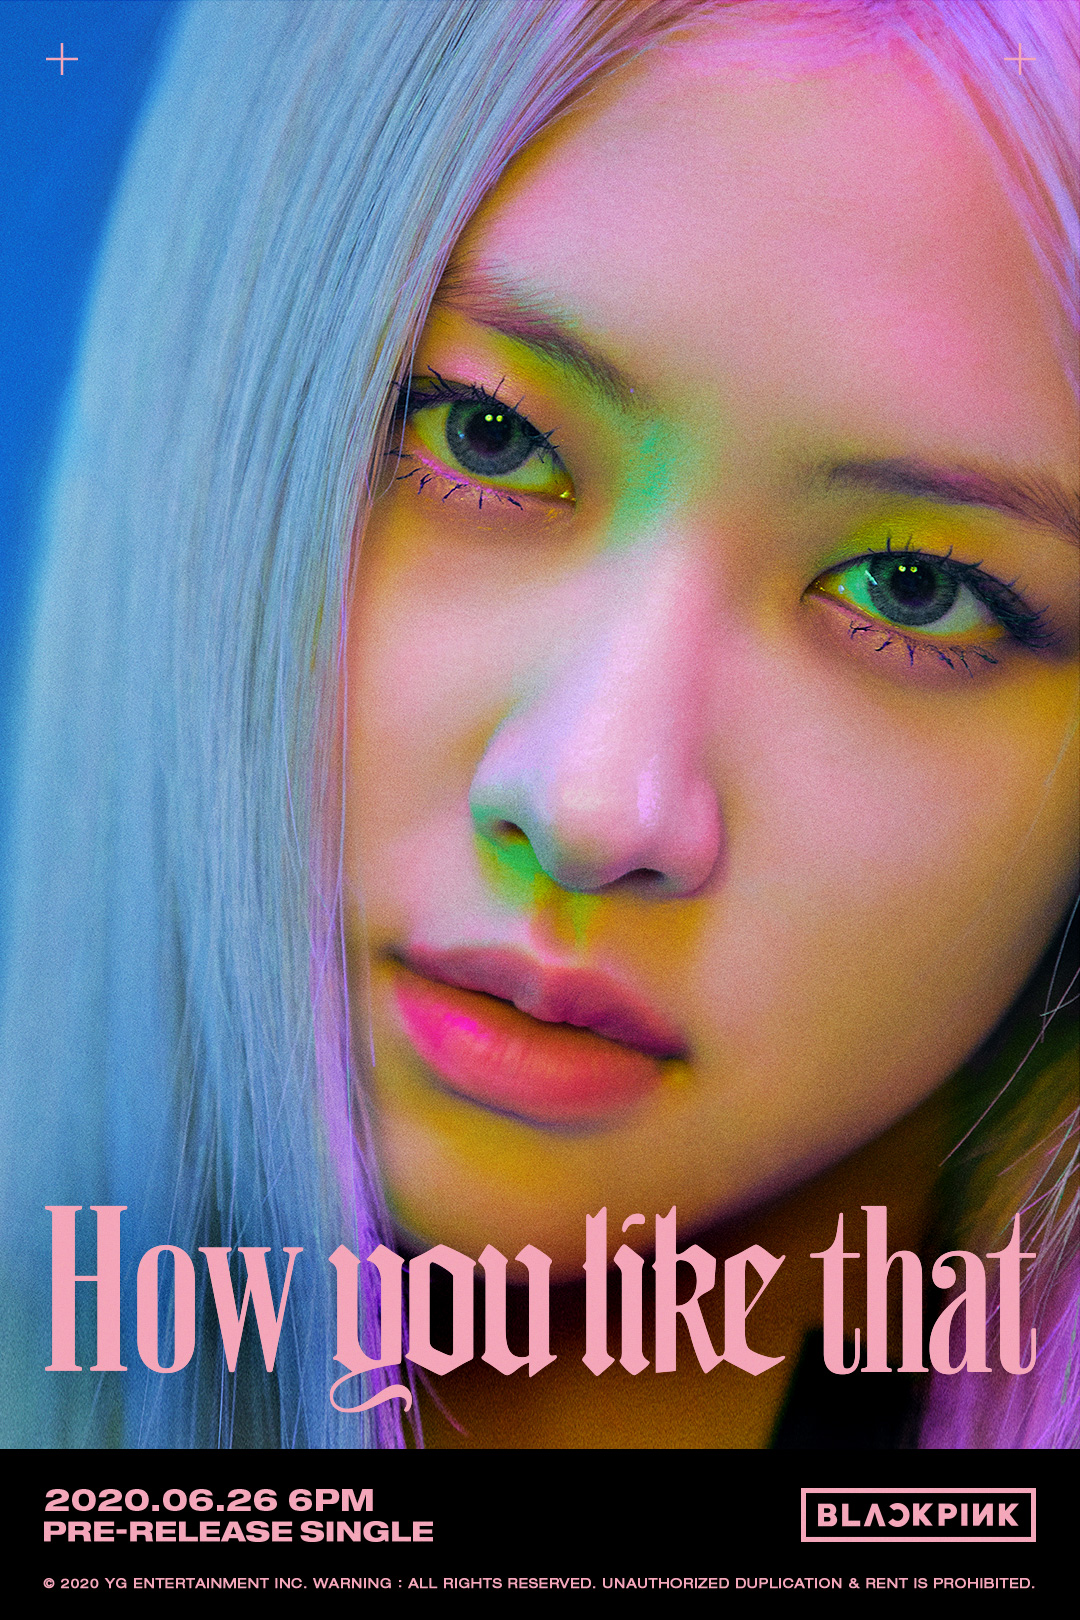 blackpink_how_you_like_that_teaser_poster_3_rose